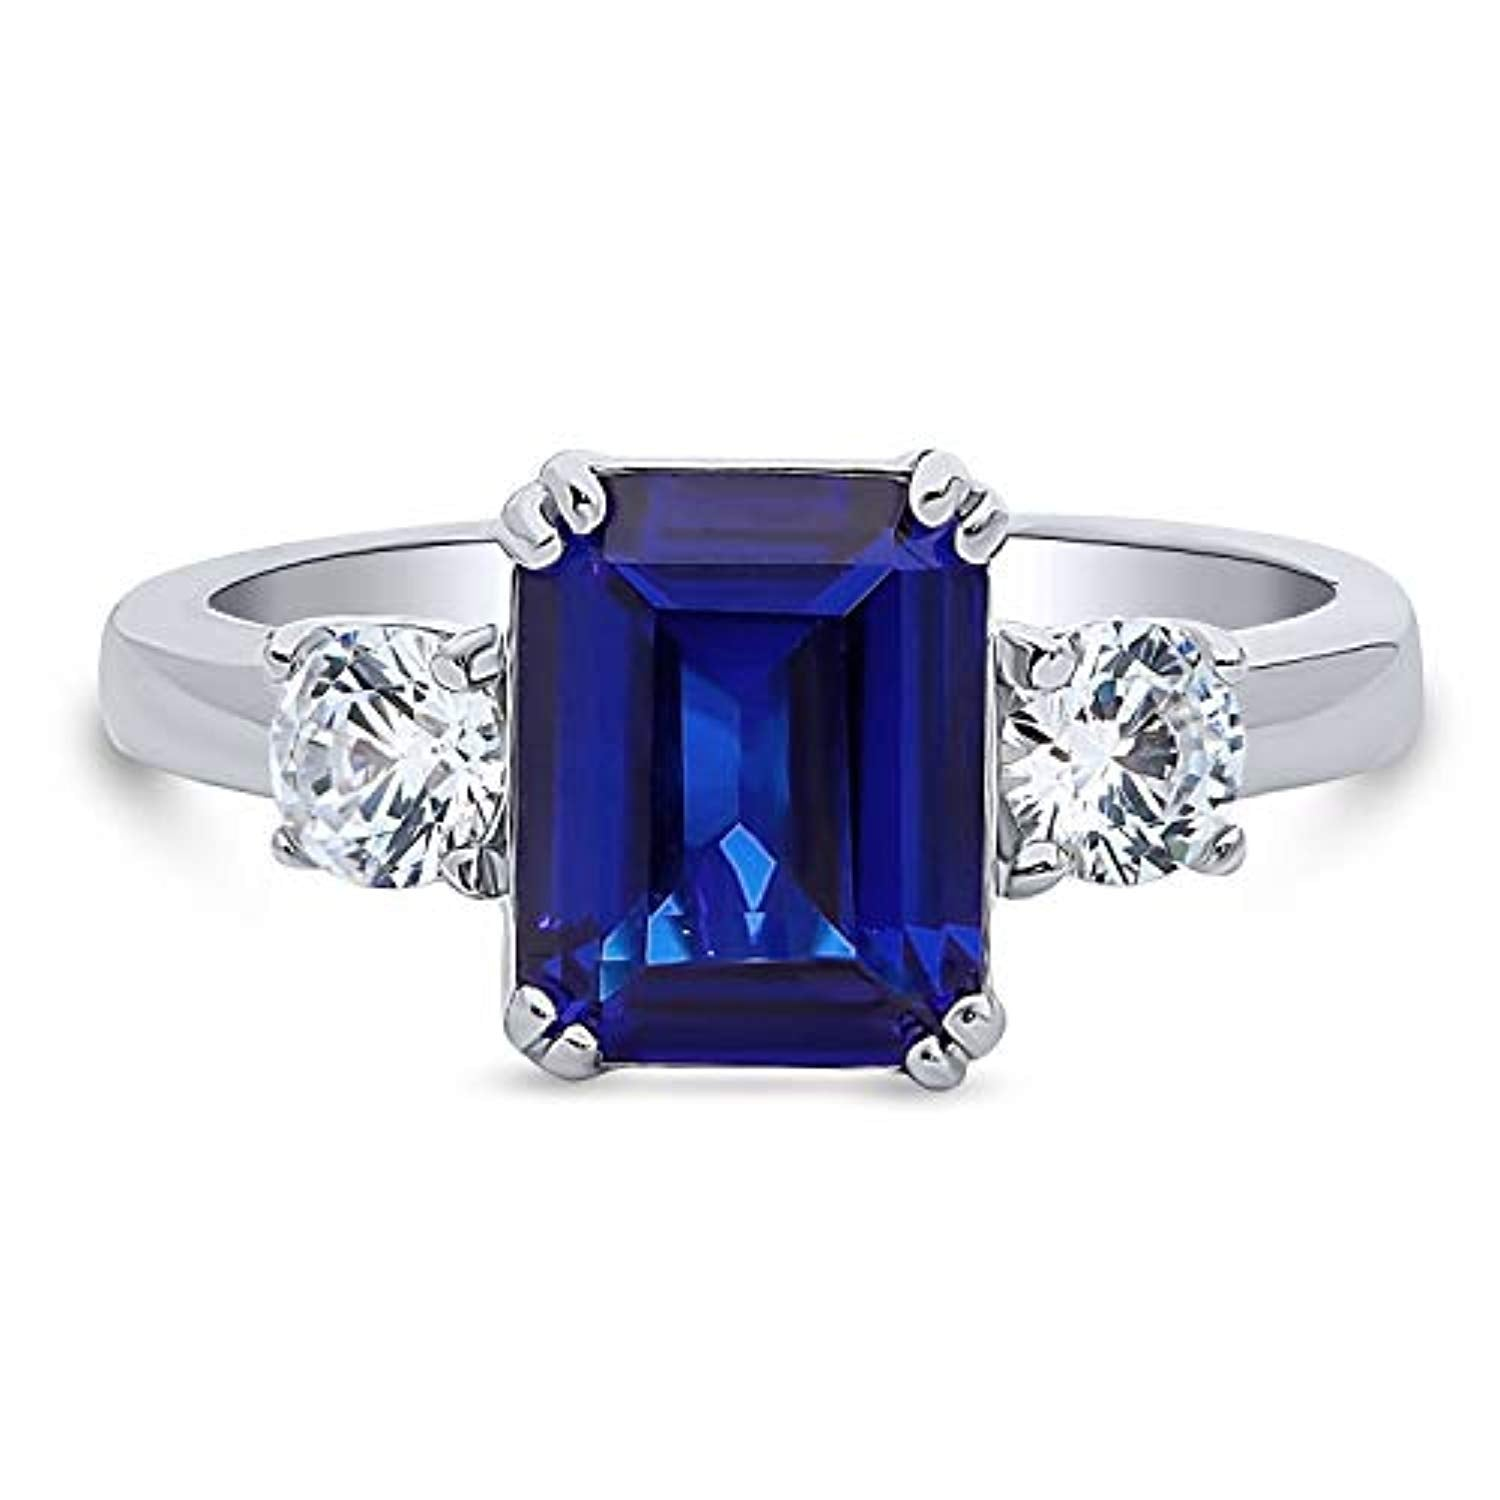 Rhodium Plated Sterling Silver Simulated Blue Sapphire Emerald Cut Cubic Zirconia CZ 3-Stone Anniversary Promise Engagement Ring